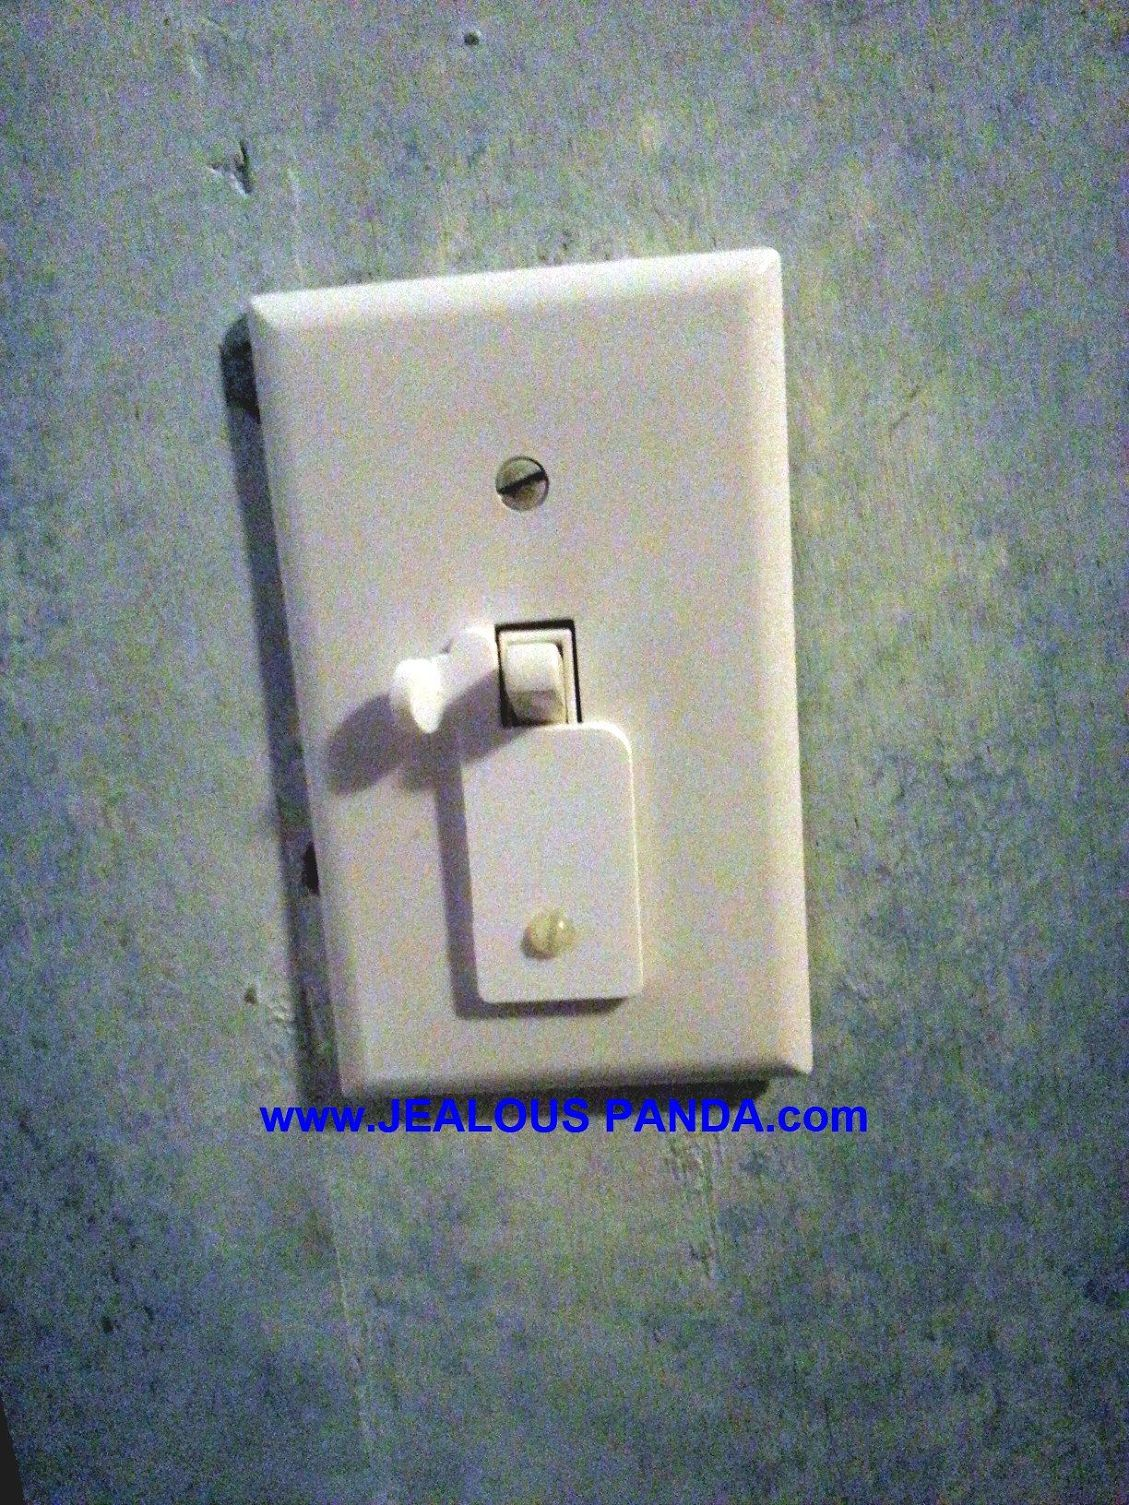 TOGGLE LIGHT  SWITCH LOCK ON OR LOCK OFF COVER